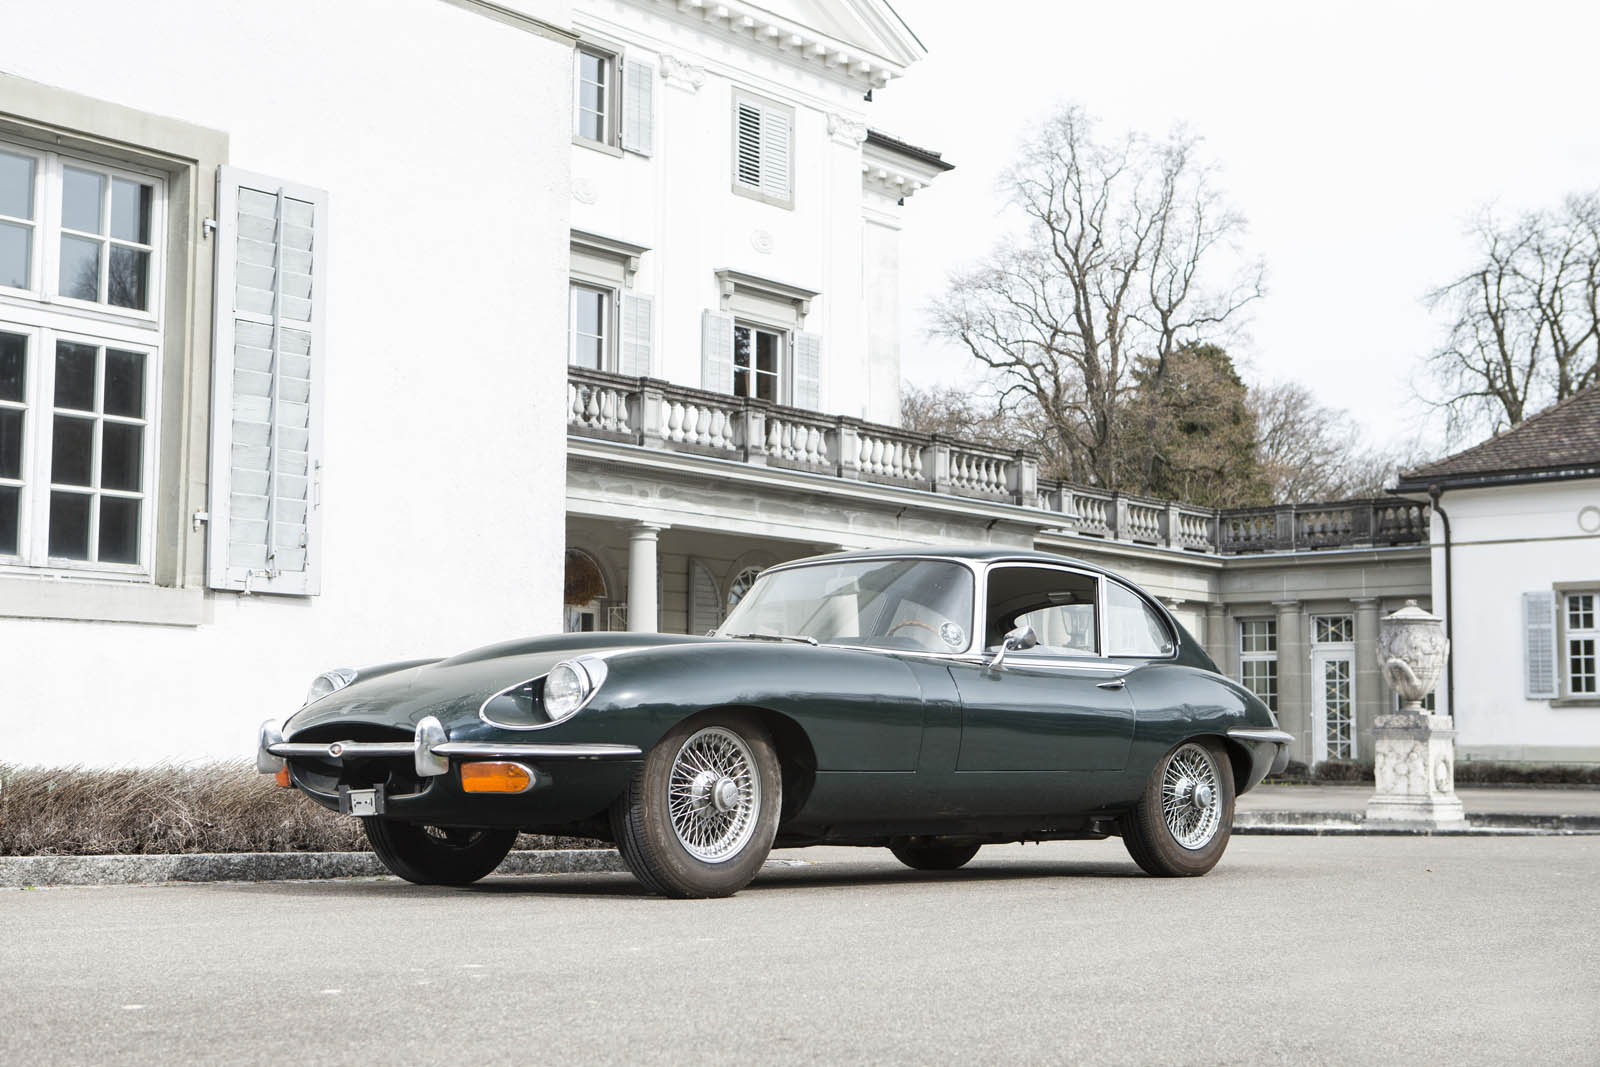 Swiss Castle cars in auctions (5)